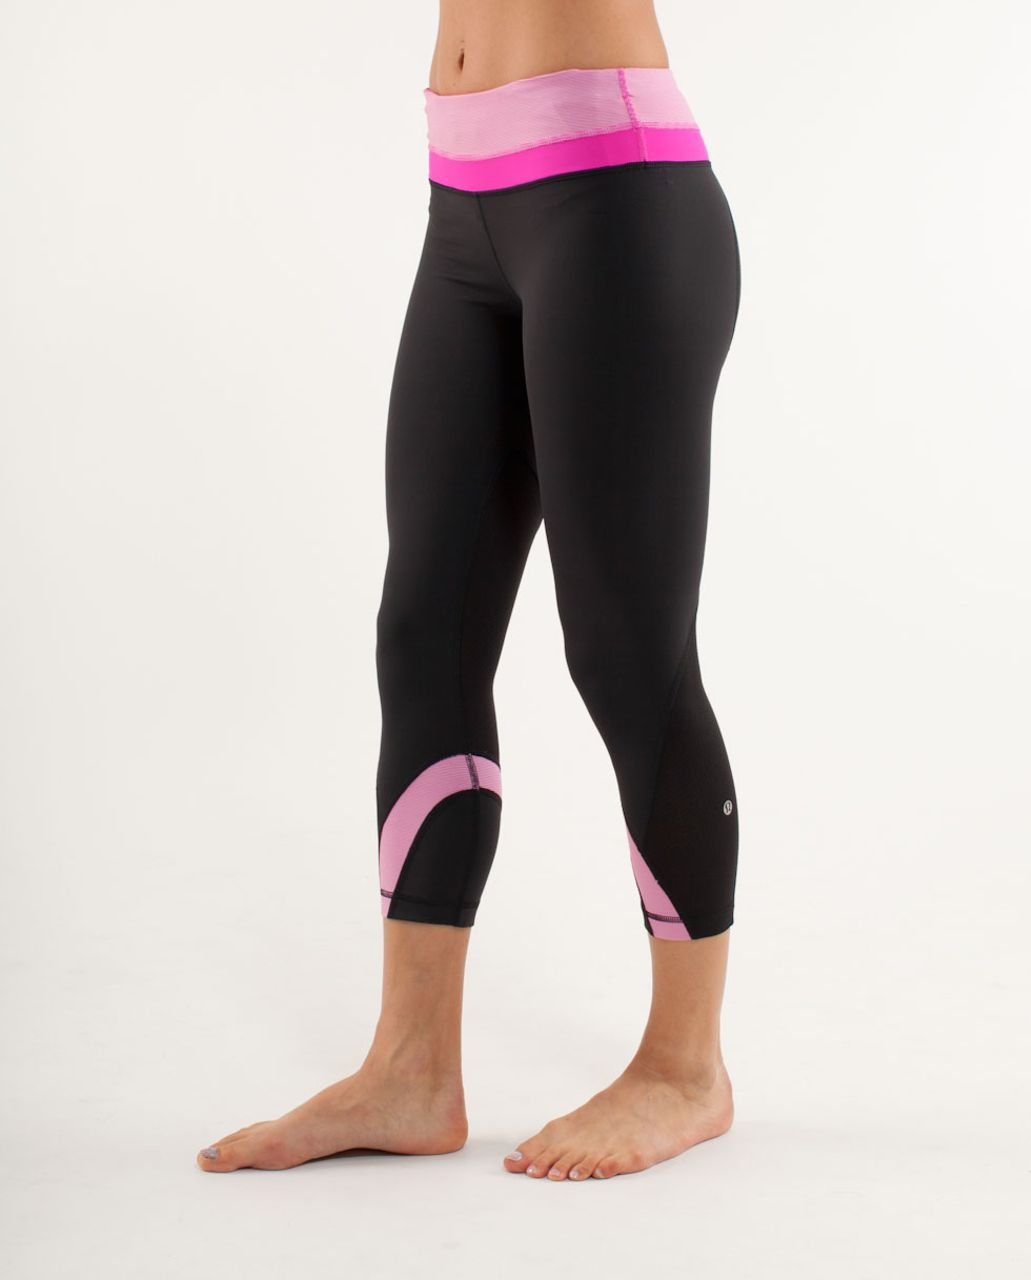 Lululemon Run:  Inspire Crop II - Black /  White Paris Pink Microstripe /  Paris Pink